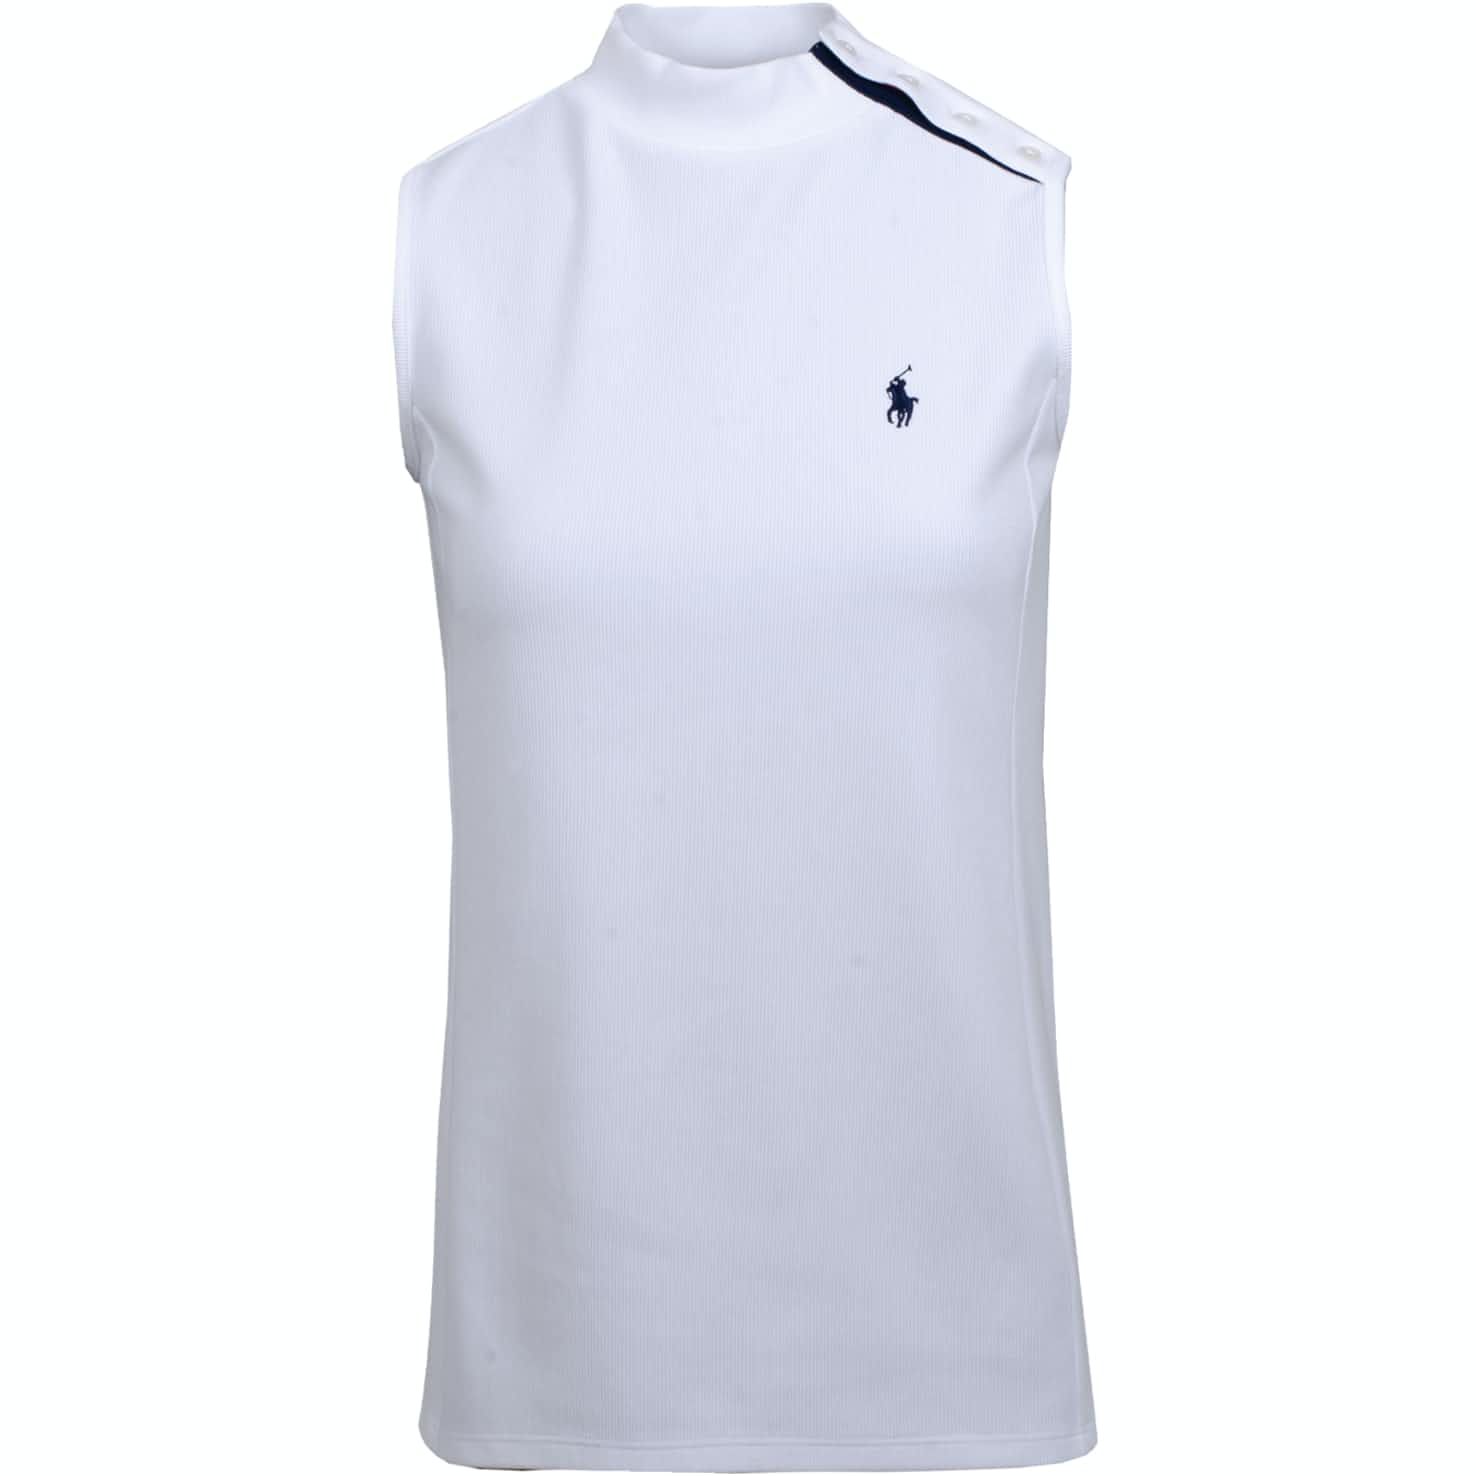 Womens SL Mockneck Top Pure White - AW19